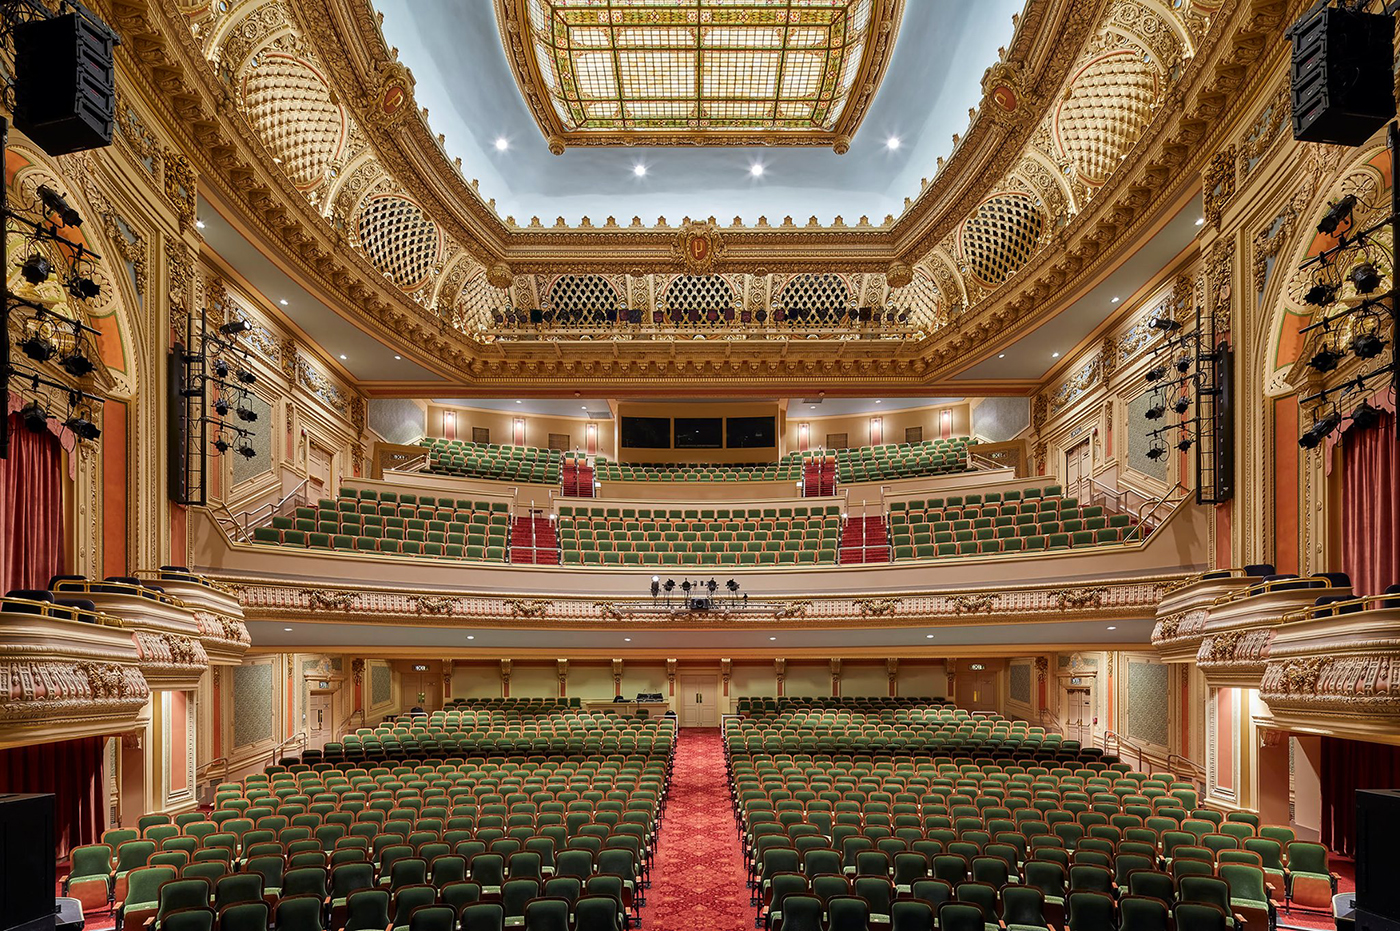 Cloistered away from public view for over 15 years, the Utah Pantages Theatre was once a beloved, 1,700-seat venue.